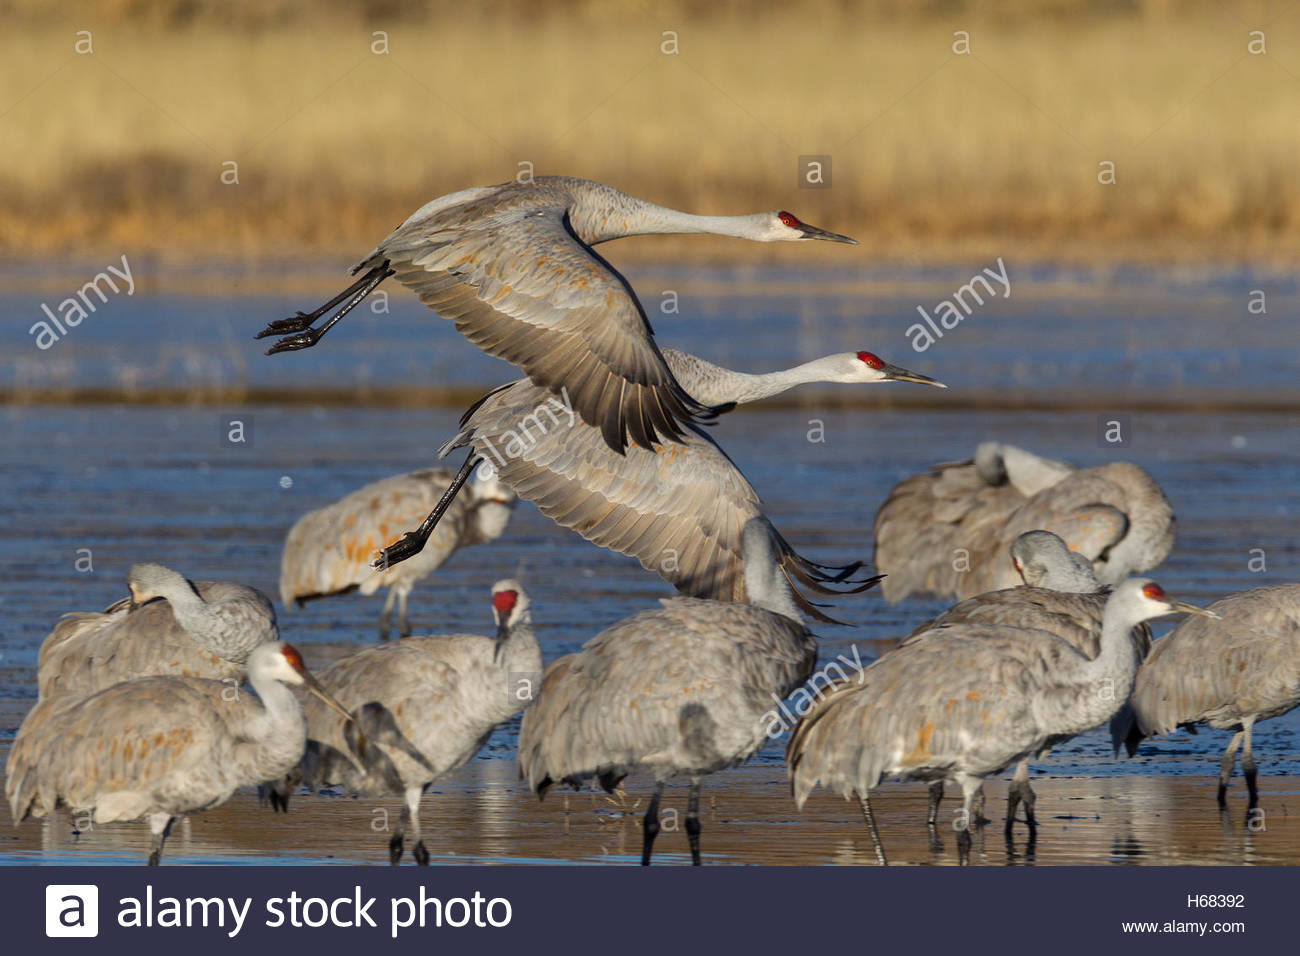 A pair of sandhill cranes (Grus canadensis) take off from a pond in the Bosque del Apache National Wildlife Refuge - Stock Image